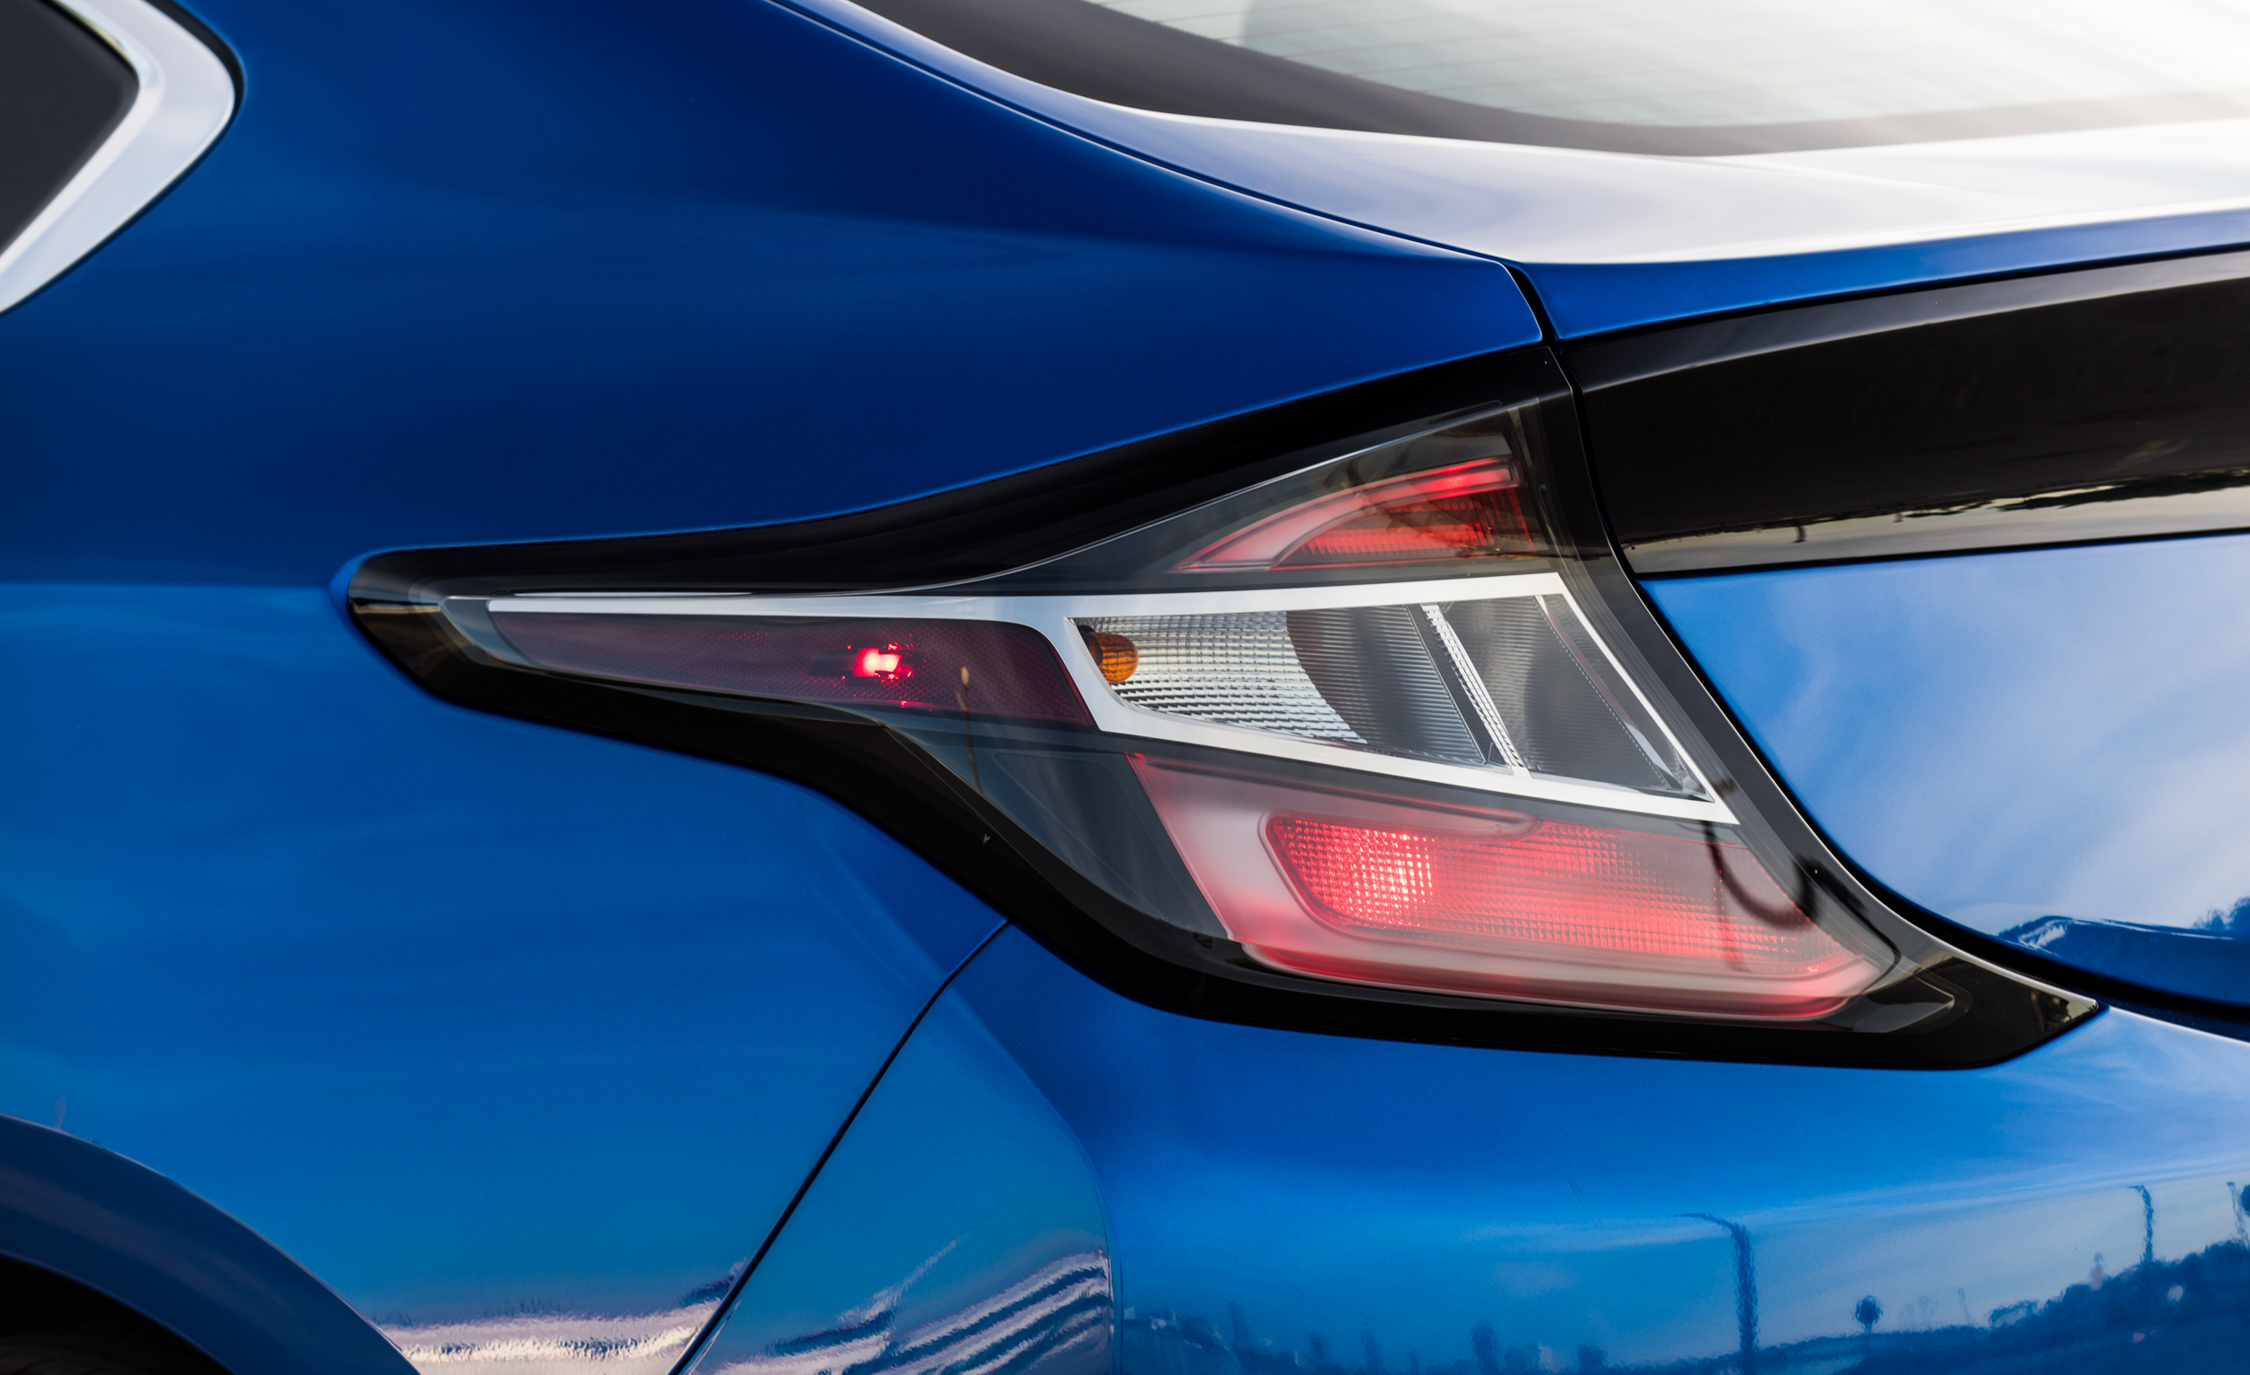 2017 Chevrolet Volt Exterior View Taillight (Photo 7 of 16)